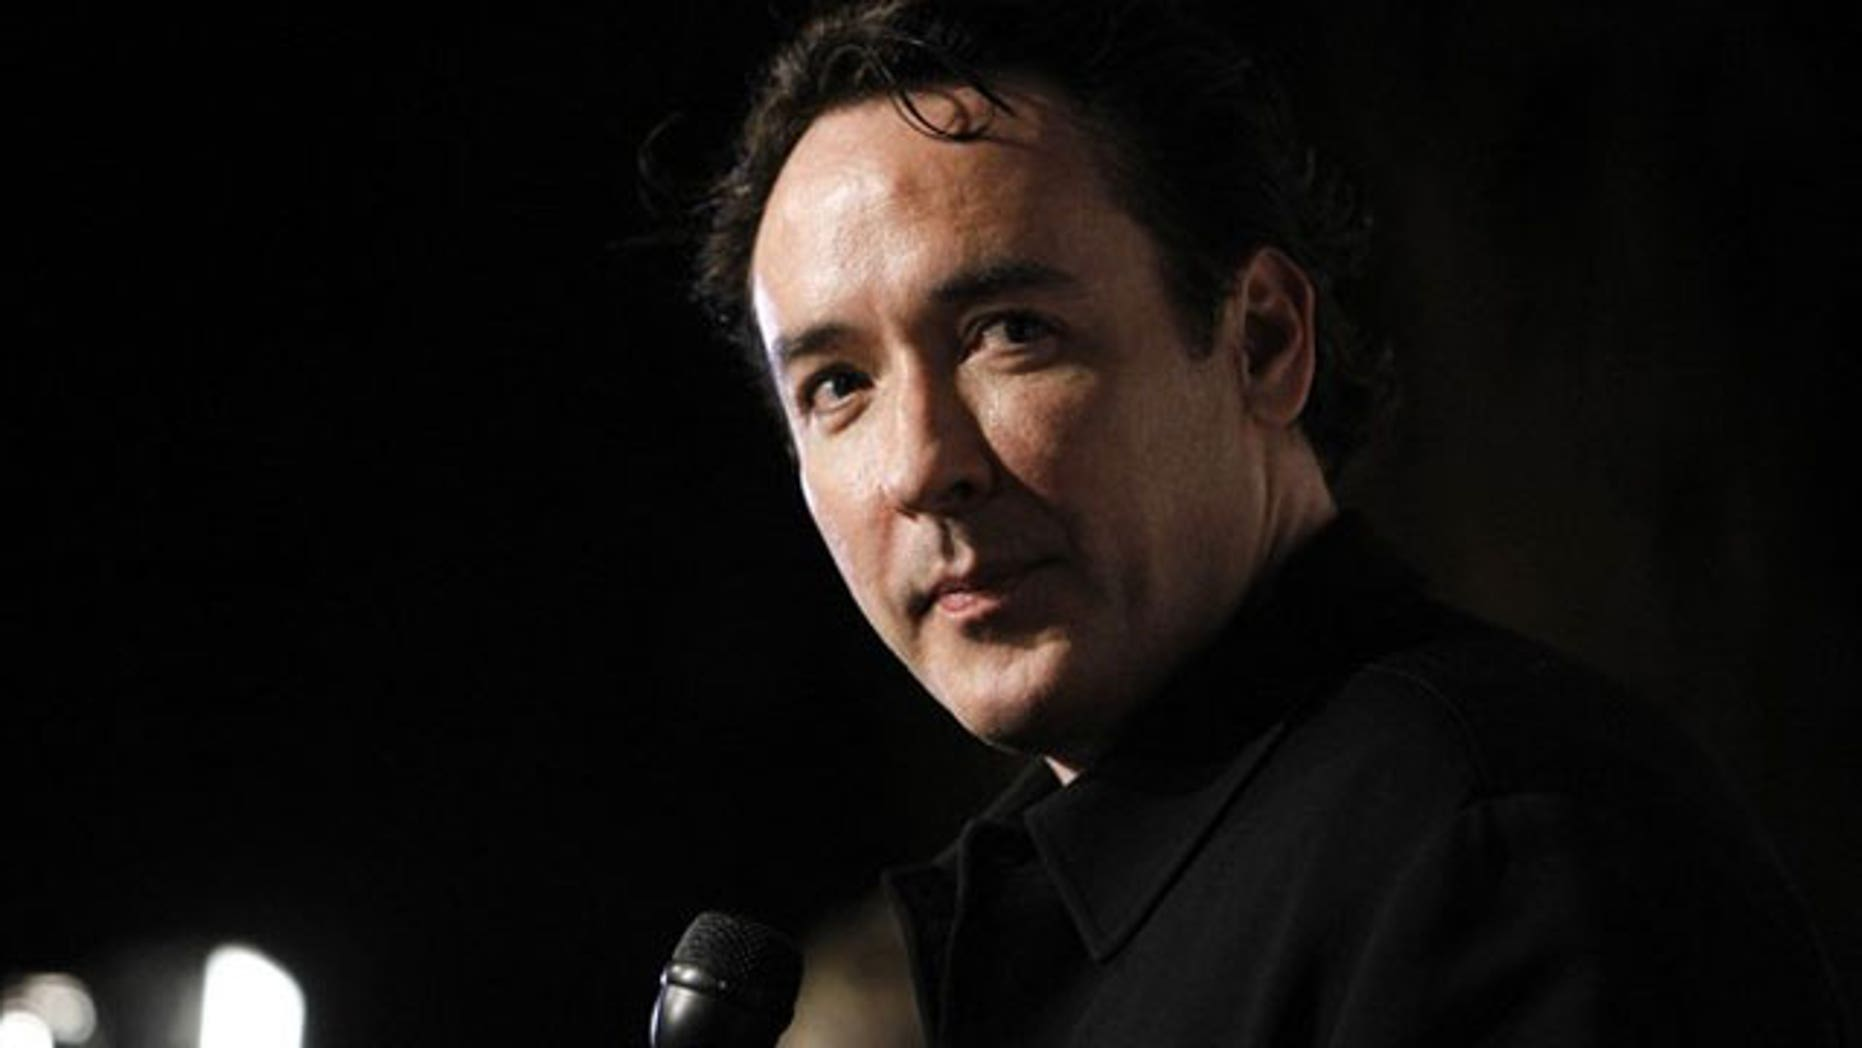 During the 2008 election, Cusack spoke out against John McCain for MoveOn.org.